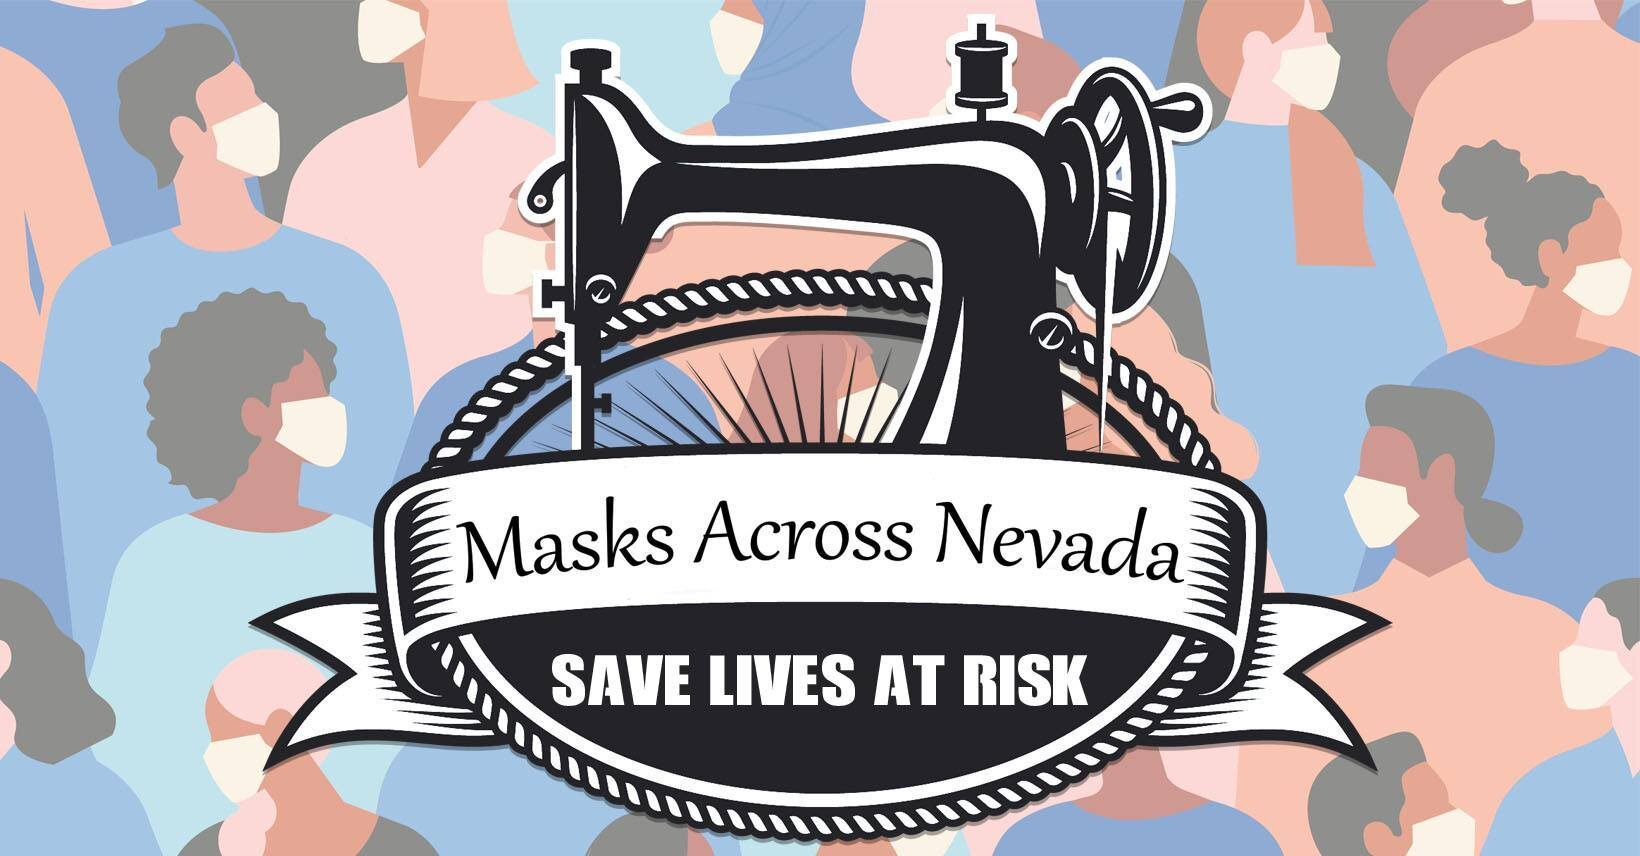 Masks across nevada - Calling all sewists! Help your community with mask shortages across Nevada. If you or someone you know can sew, then please join Masks Across Nevada in helping provide the community with the masks they need.Masks Across Nevada is not an organization. It is a FB group to get people together, sew and share their tips.